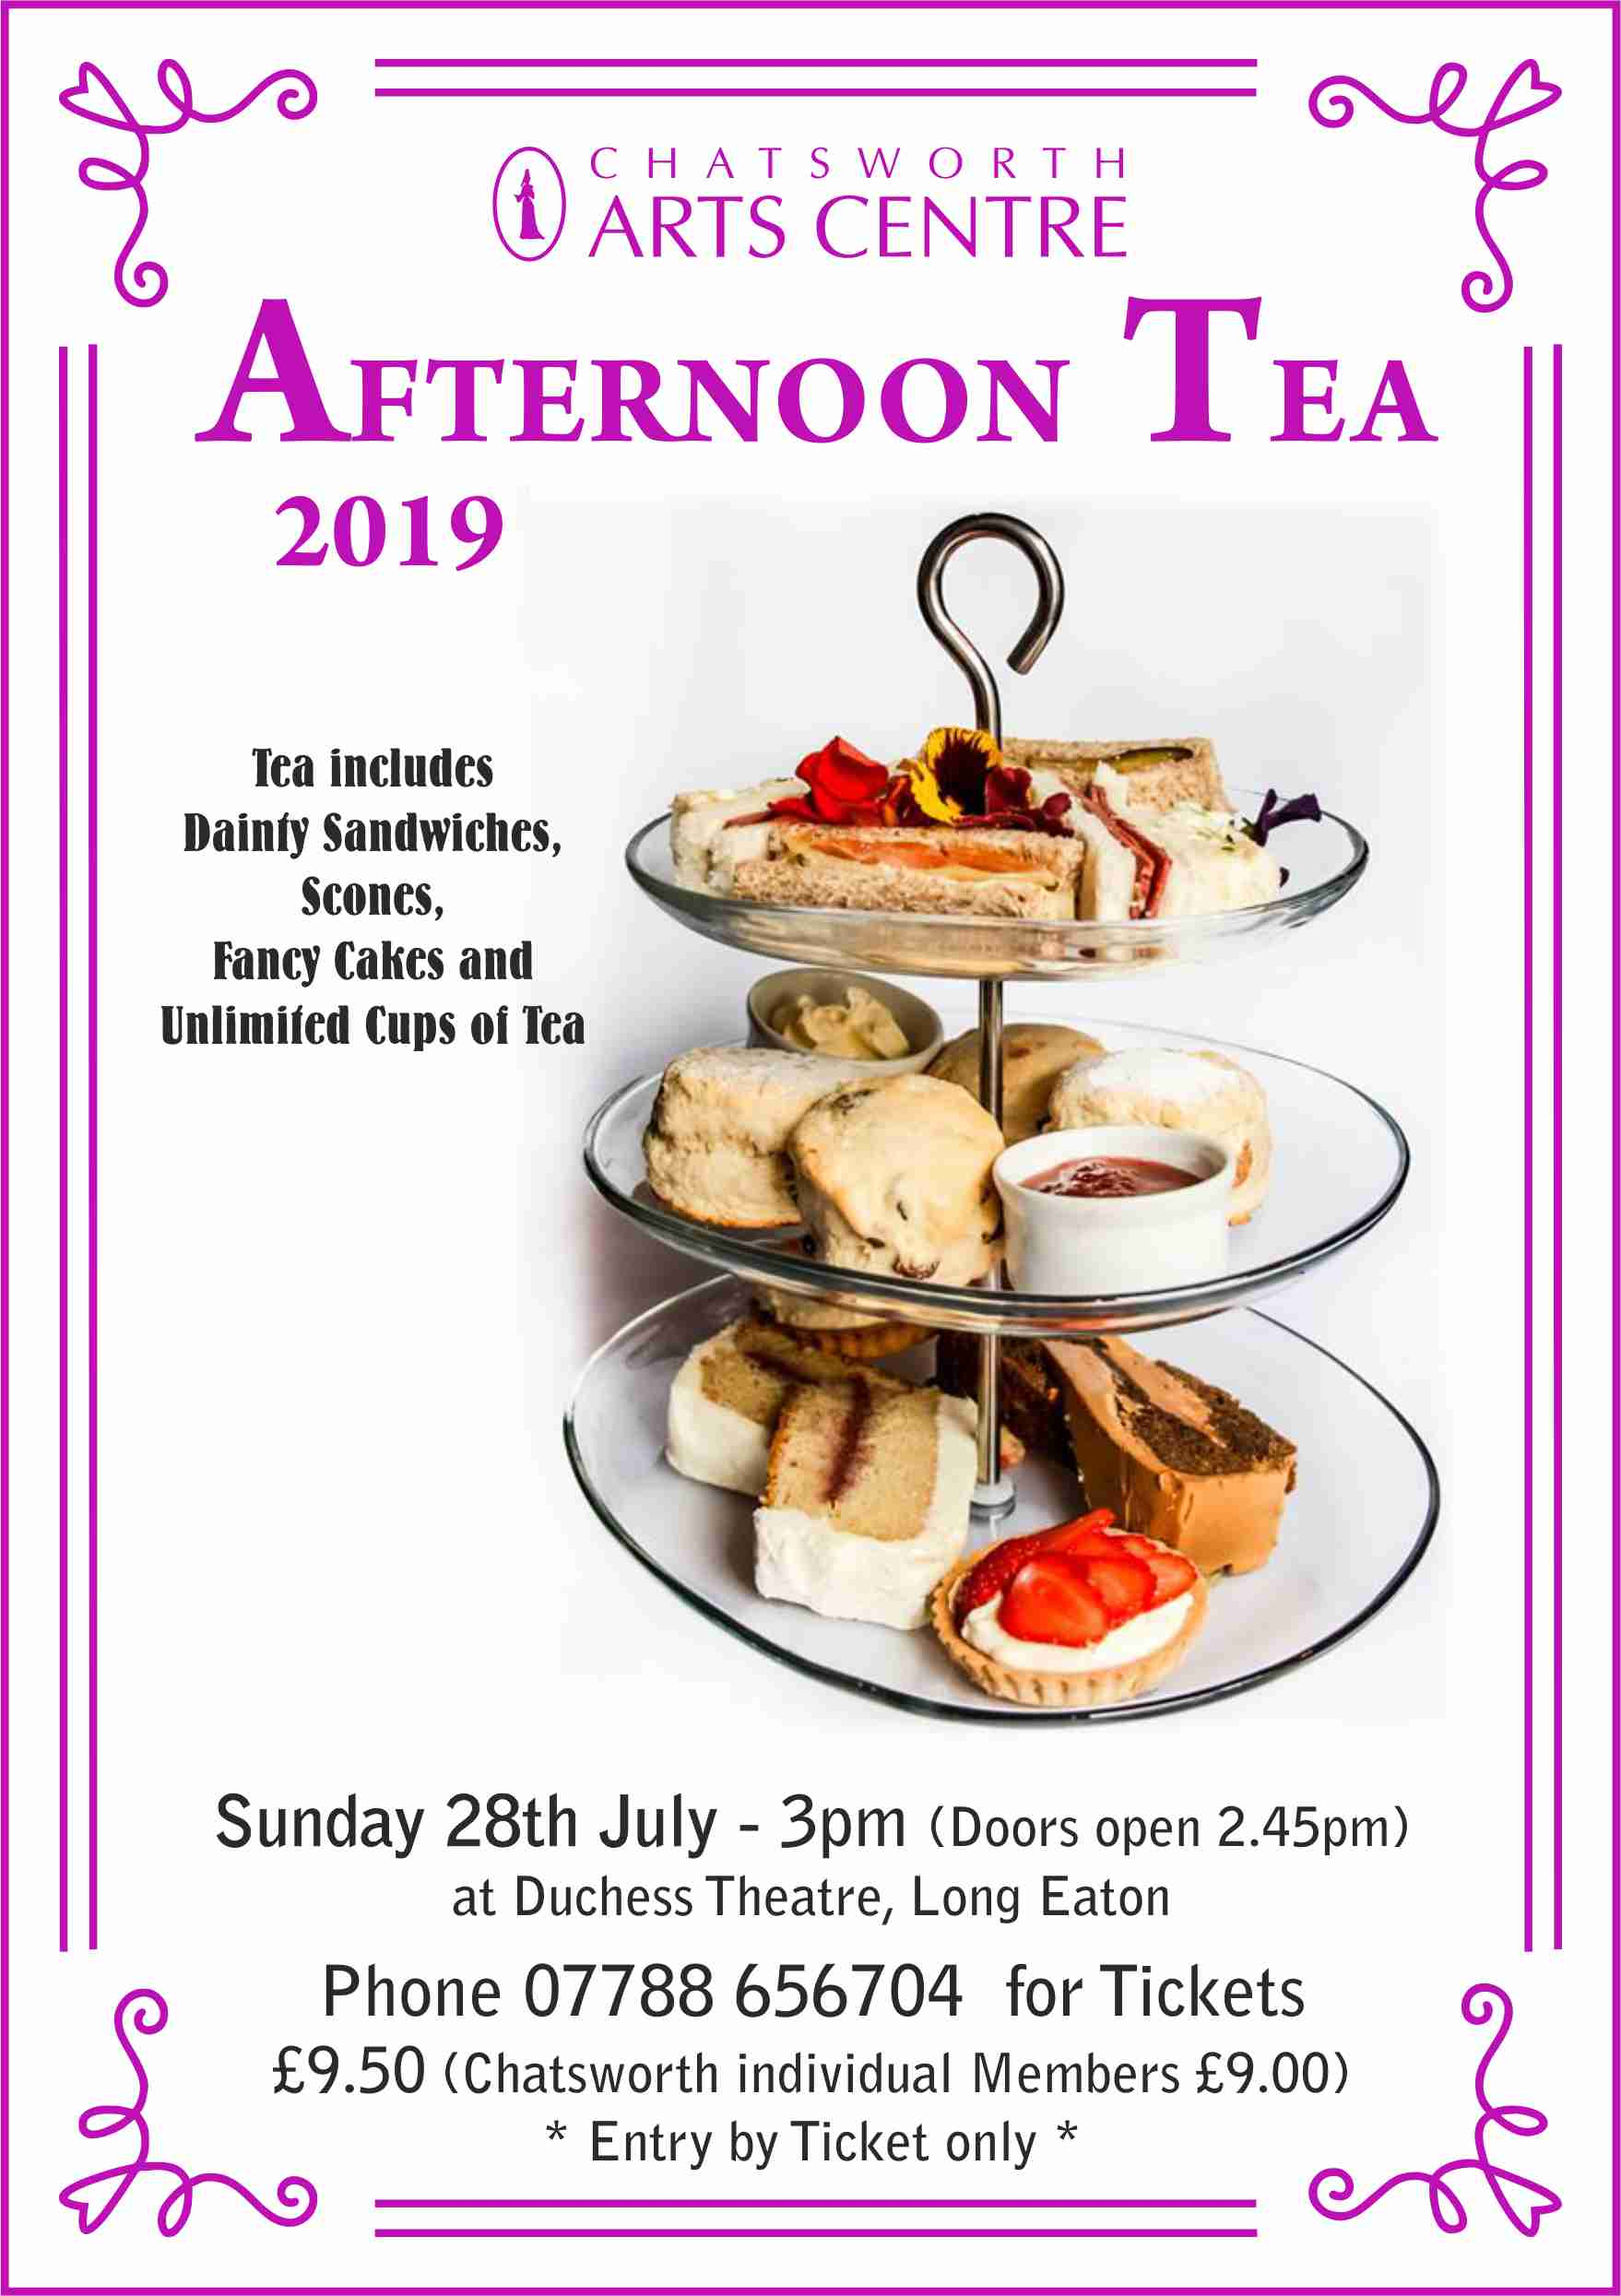 AFTERNOON TEA - Chatsworth Arts Centre banner image